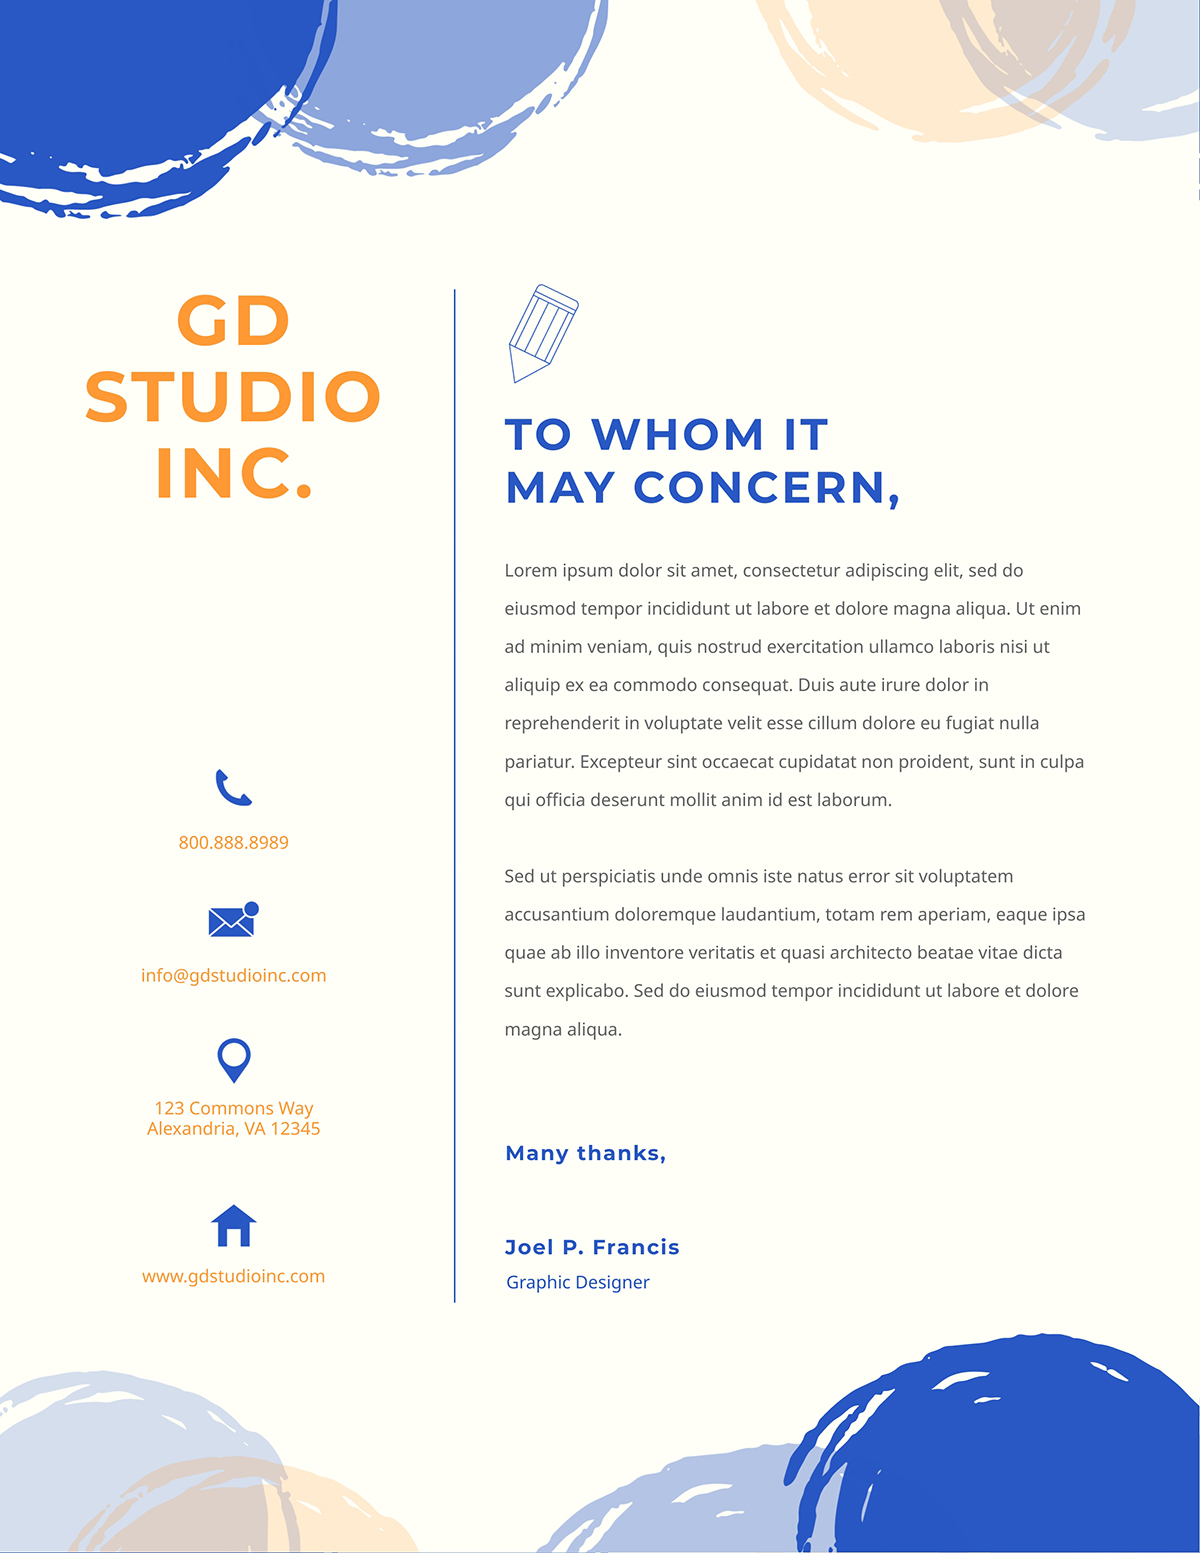 Blue and orange business letter template available on Visme.